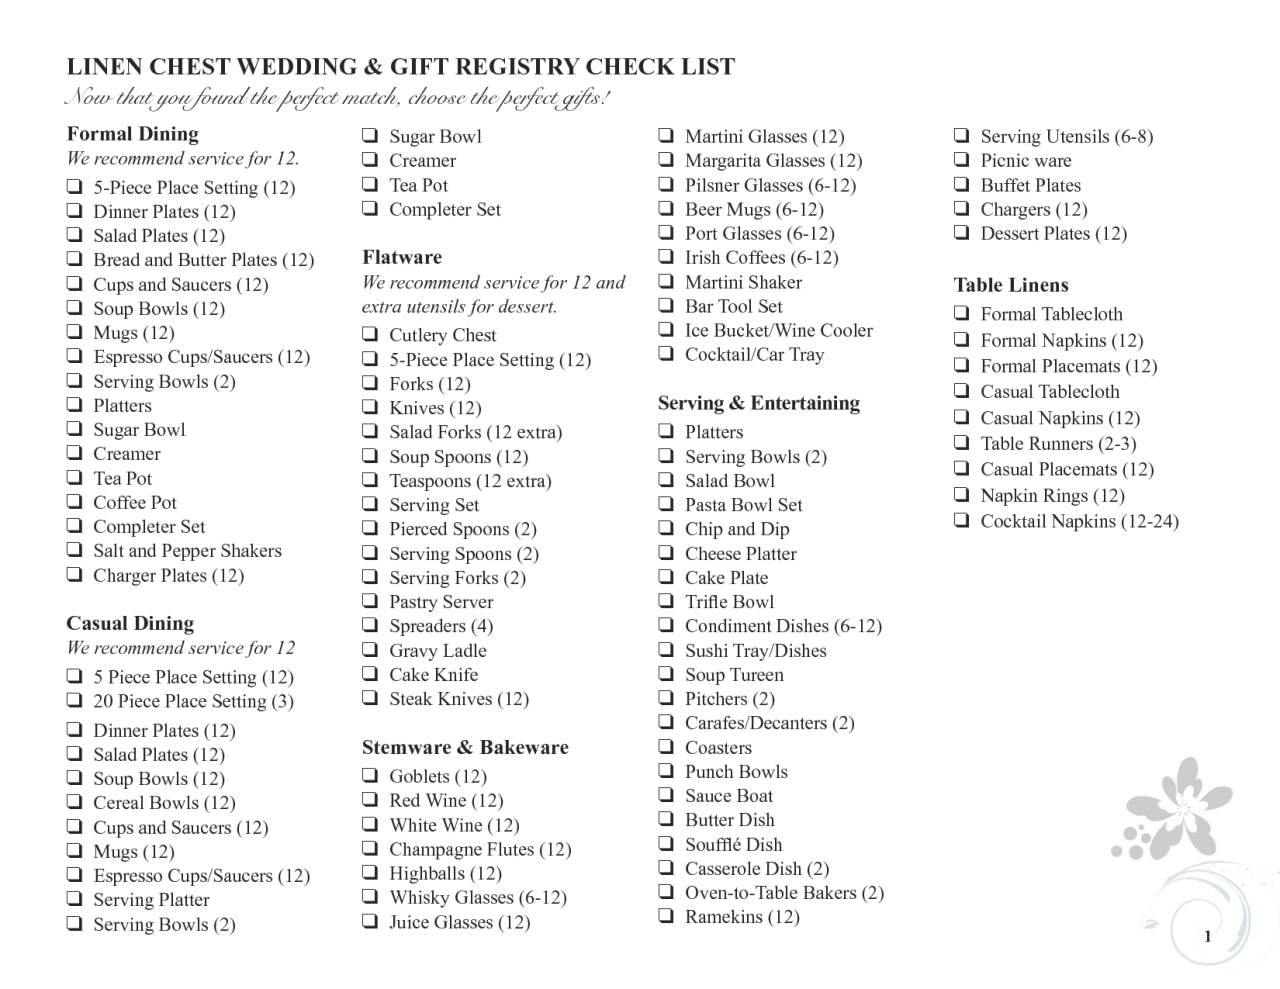 This wedding registry checklist from Compucentro is ideal